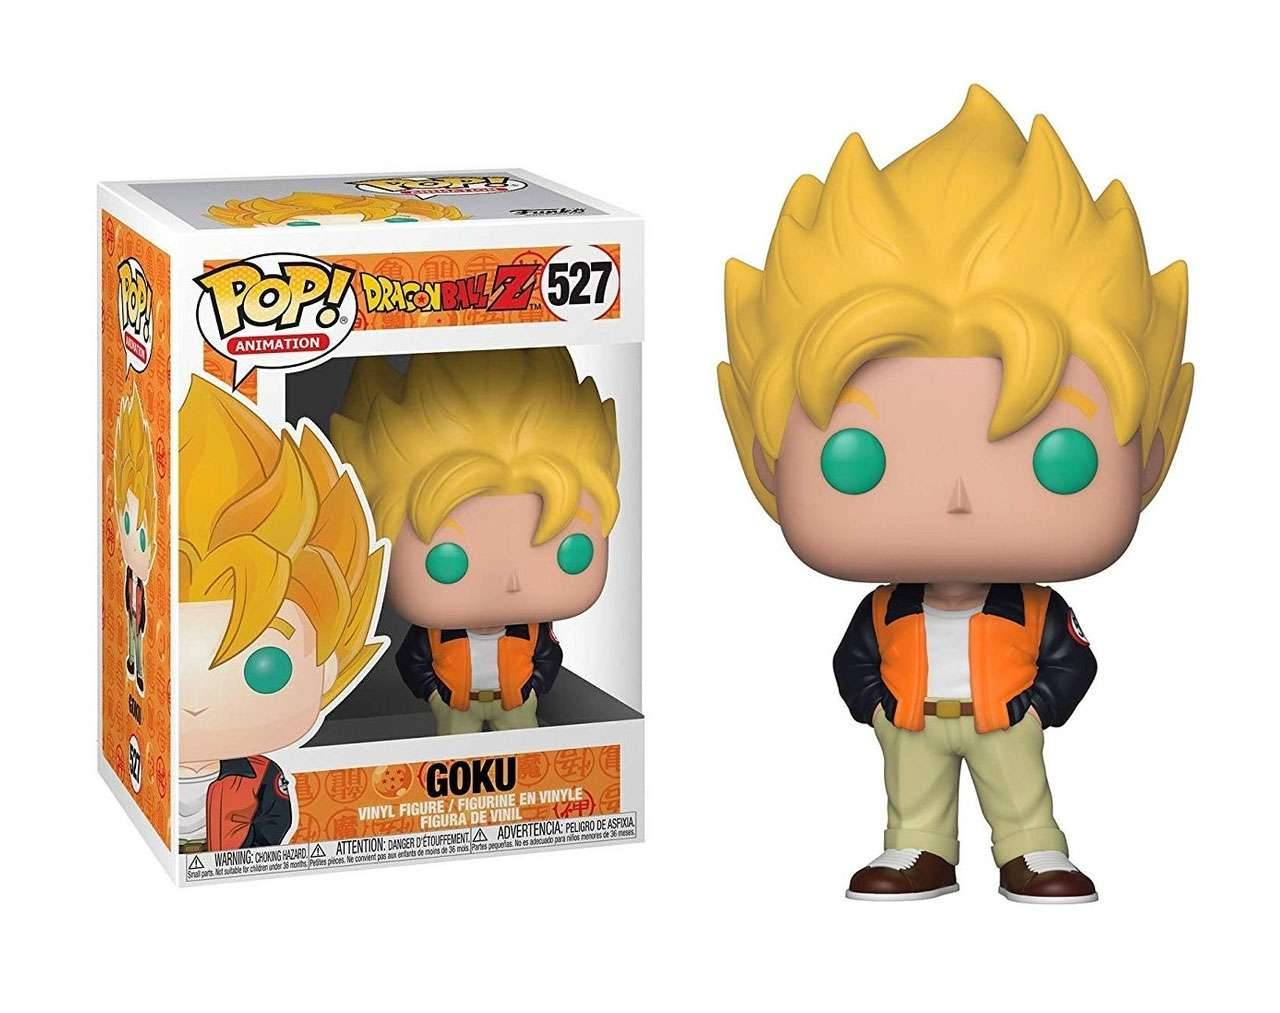 Goku (Casual) Pop! Vinyl